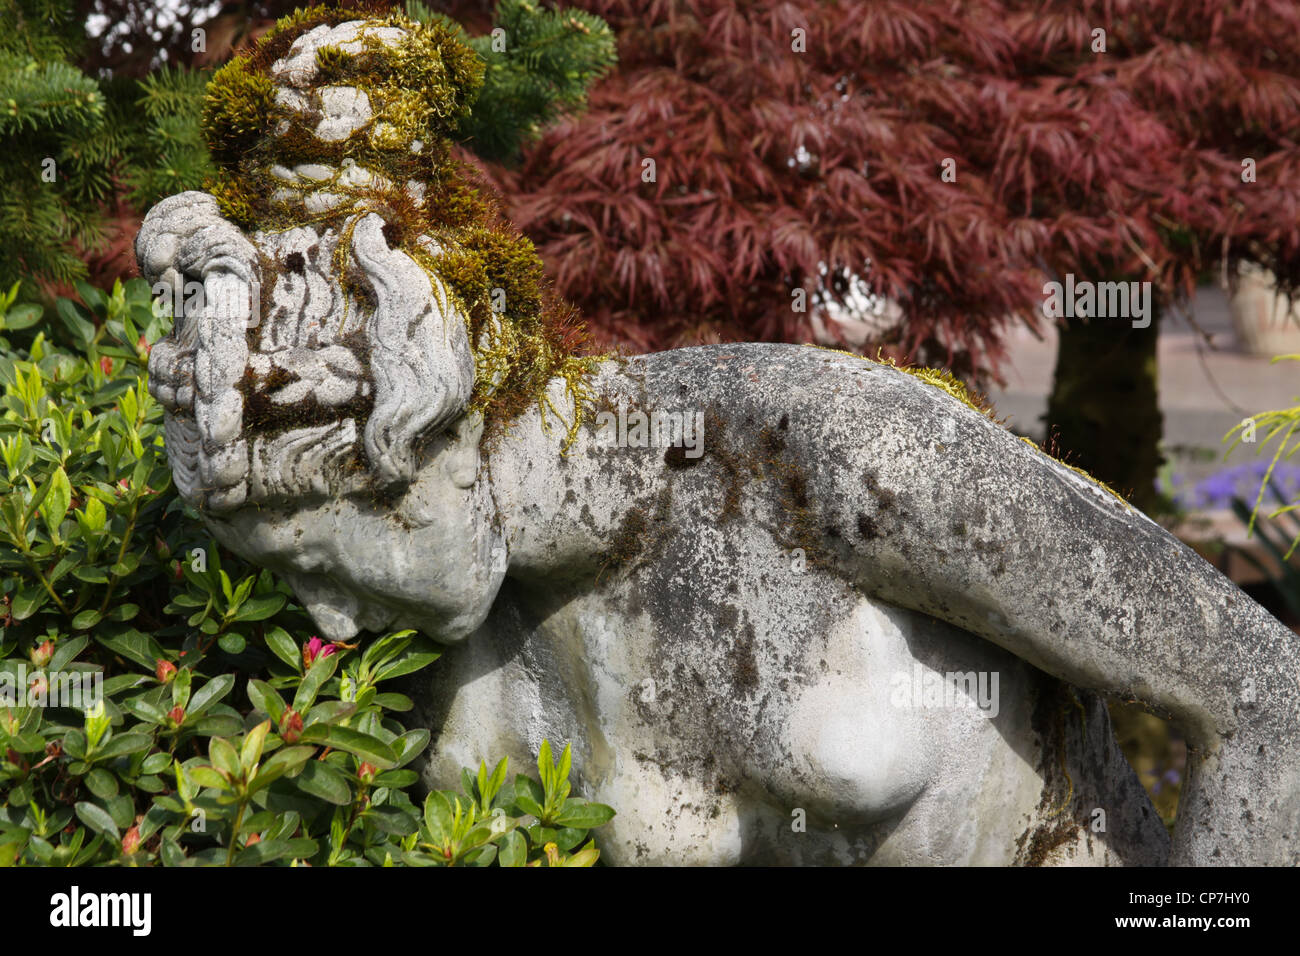 The statue in the garden takes time to smell  the flowers. - Stock Image